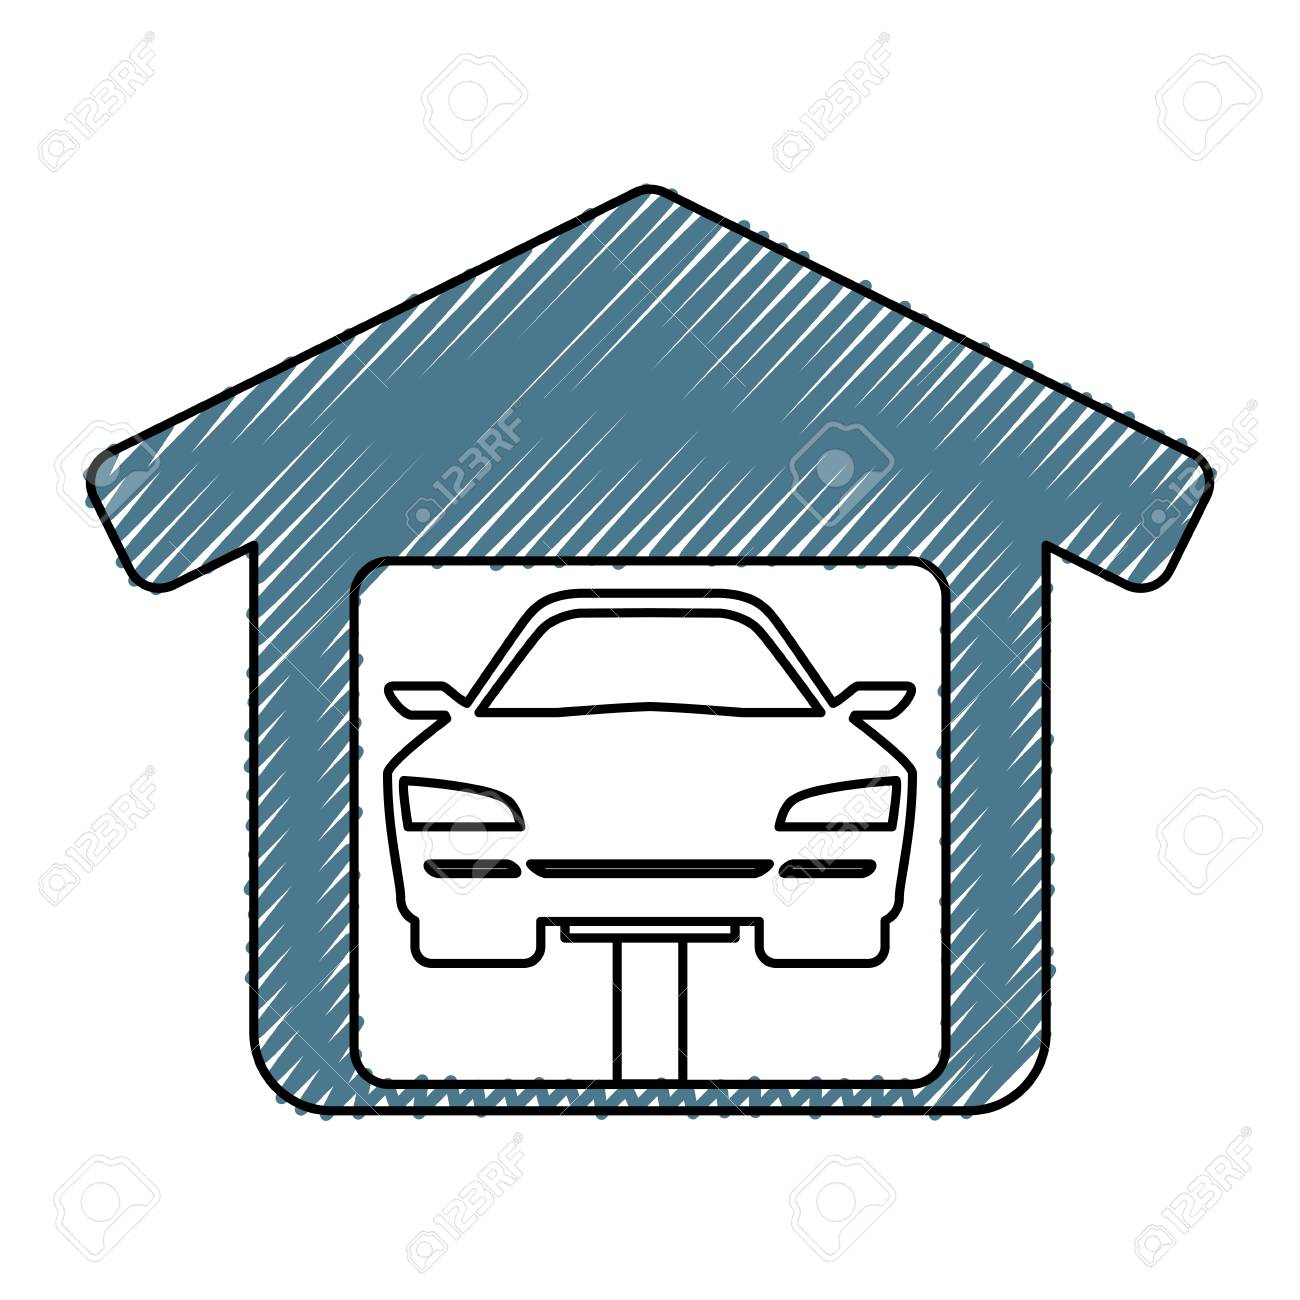 Garage Door Mechanic Icon Vector Illustration Graphic Design Royalty